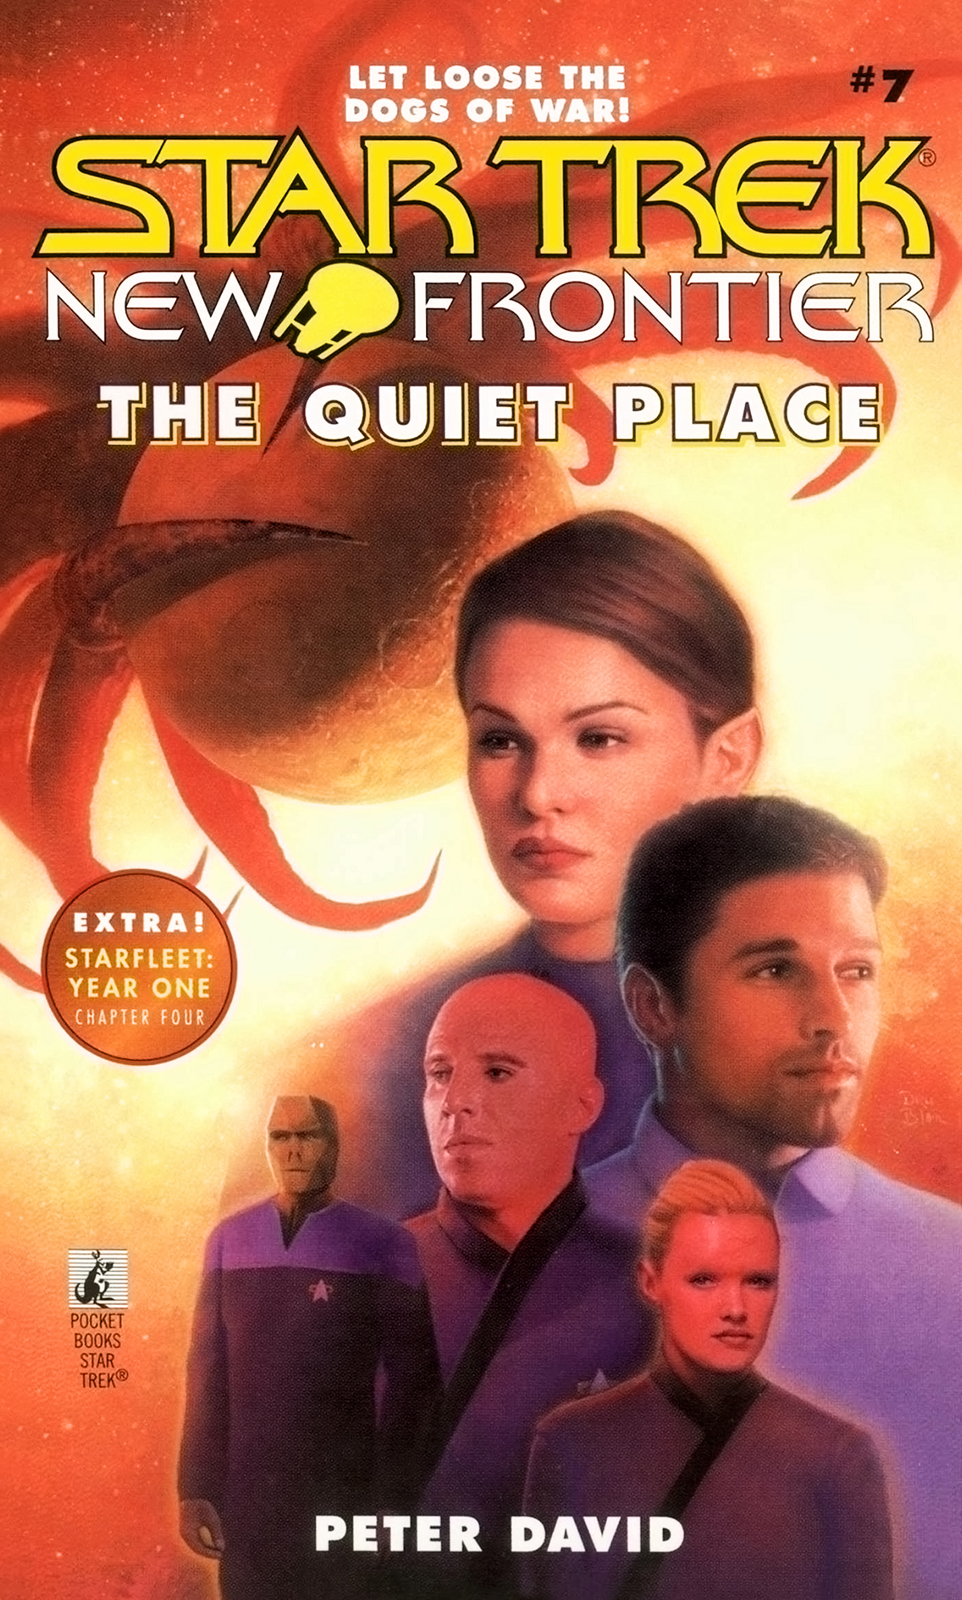 File:The Quiet Place cover.jpg